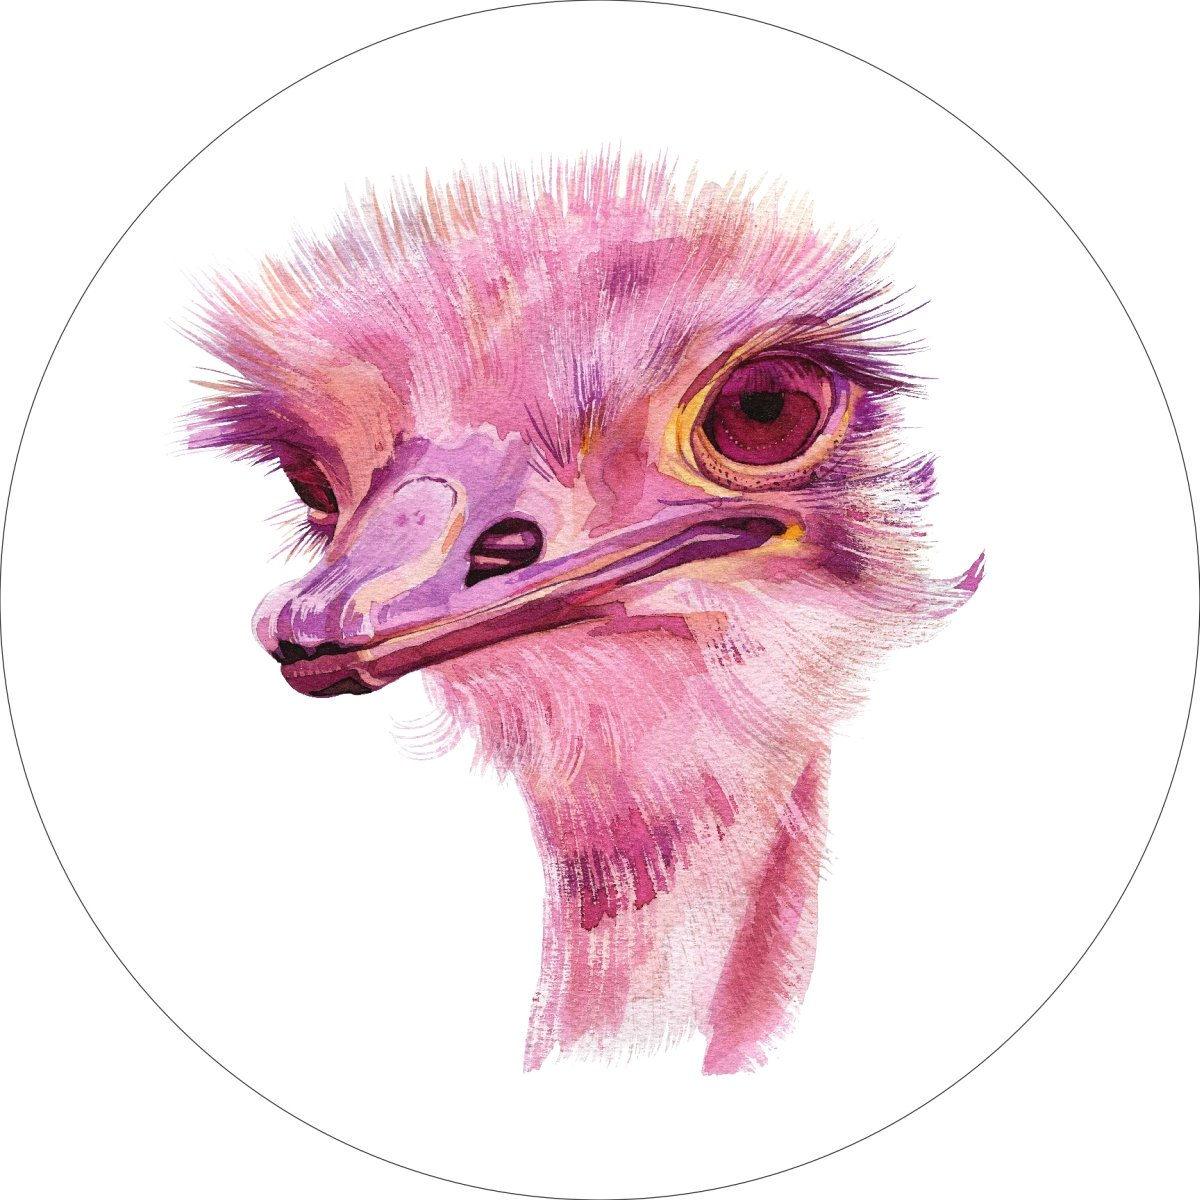 Ostrich Home Wall Shelf Decor Animal Decorations Watercolor Round Sign - 18 Inch, Plastic